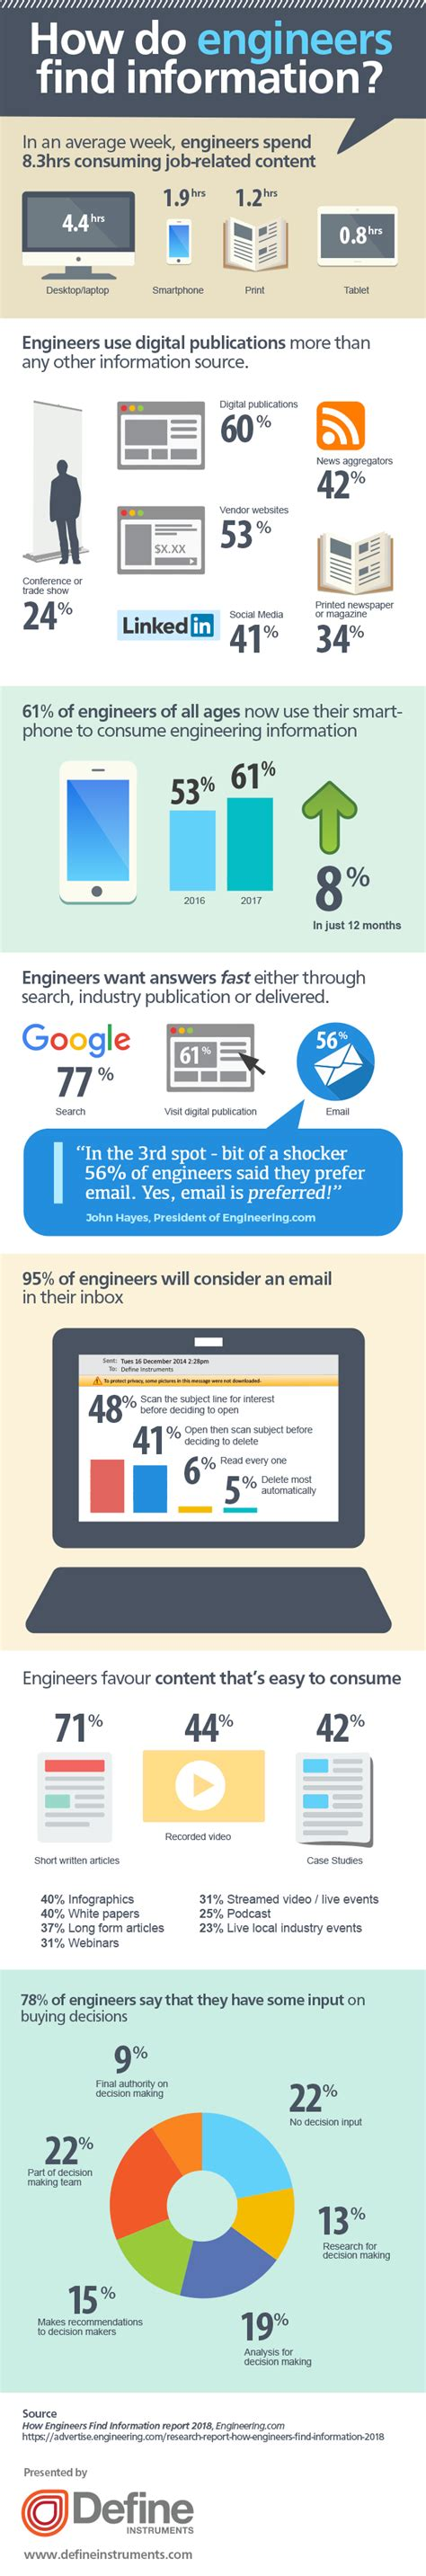 Find S Info How Engineers Find Information Infographic Visualistan